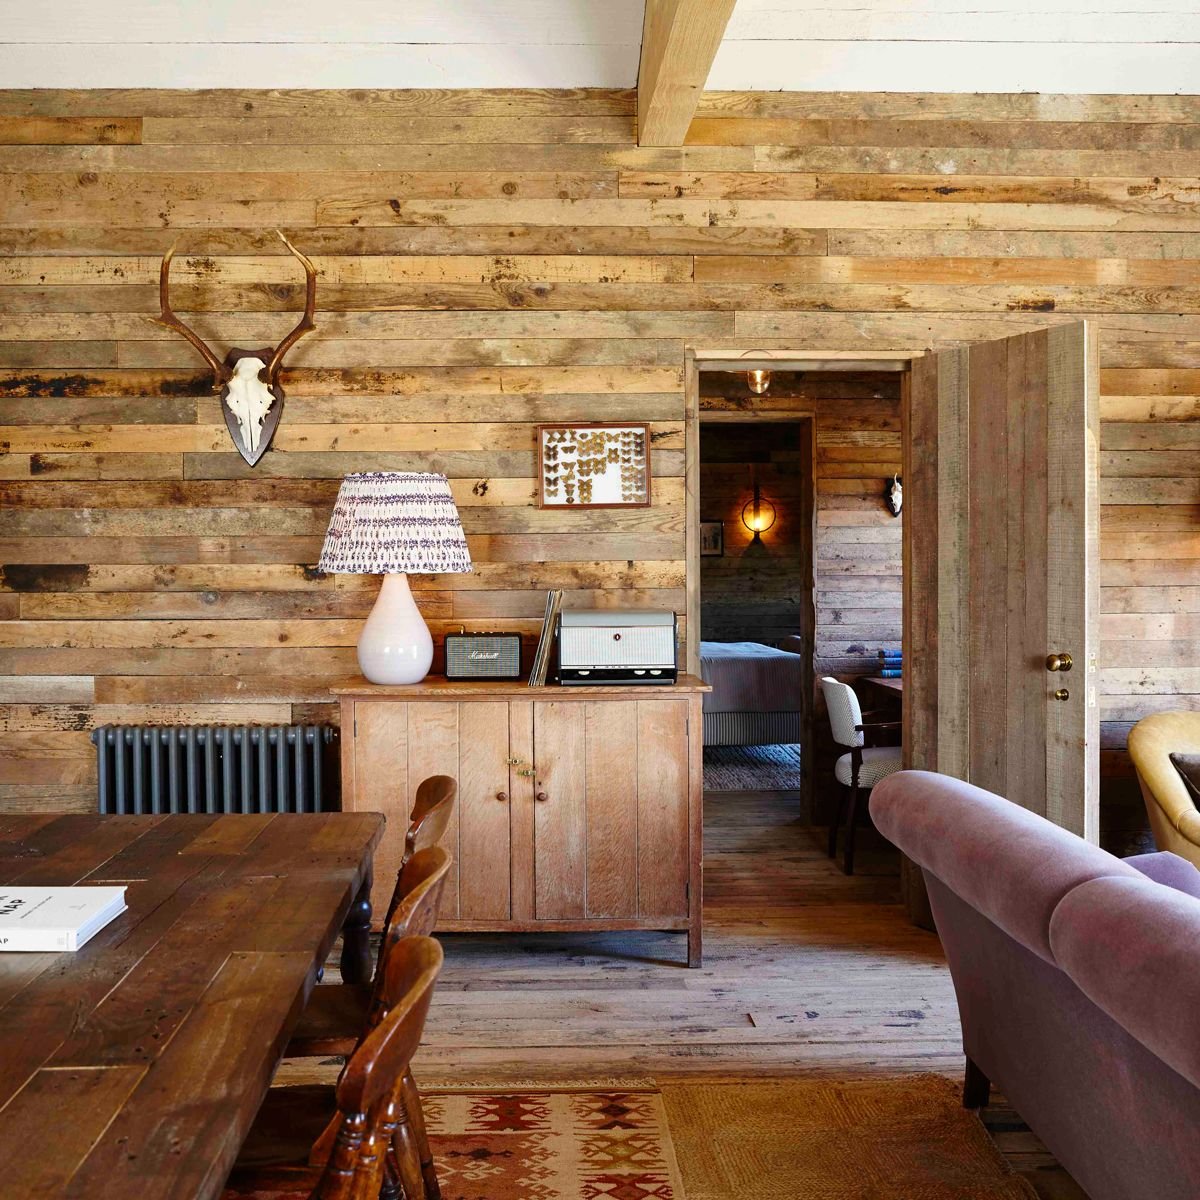 Soho Farmhouse in Oxfordshire, England. in 2019 Rustic